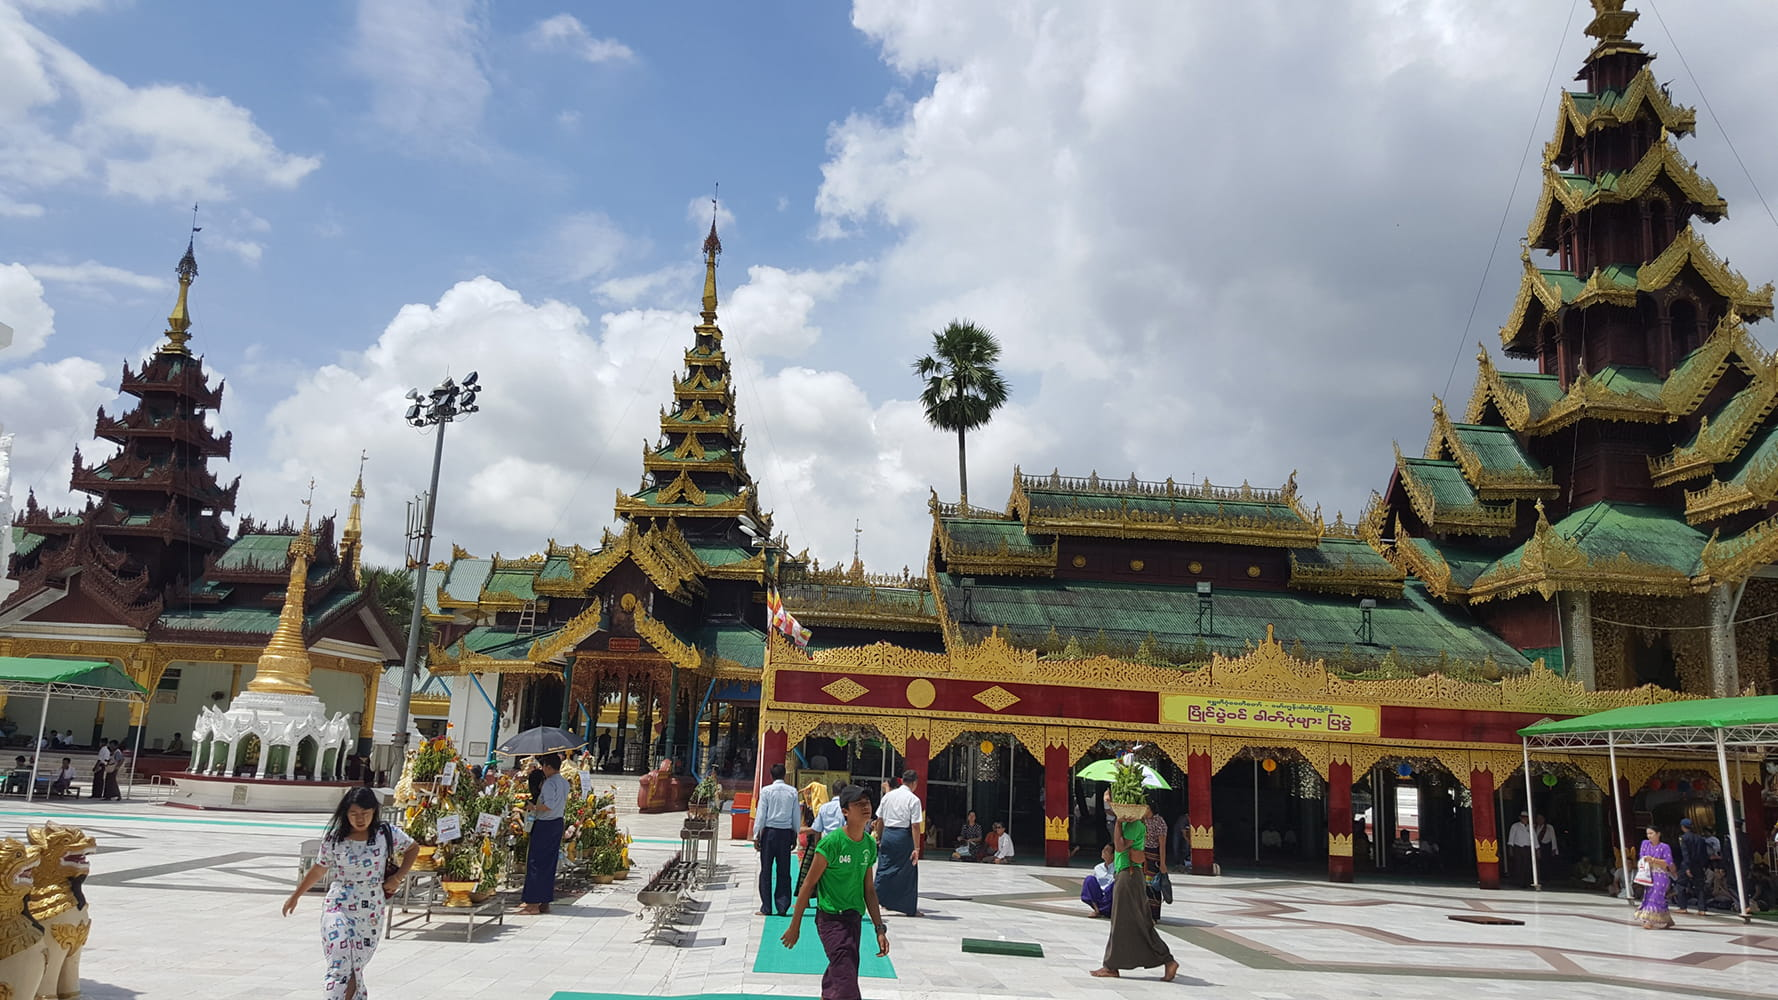 Within the compound of Shwedagon Pagoda